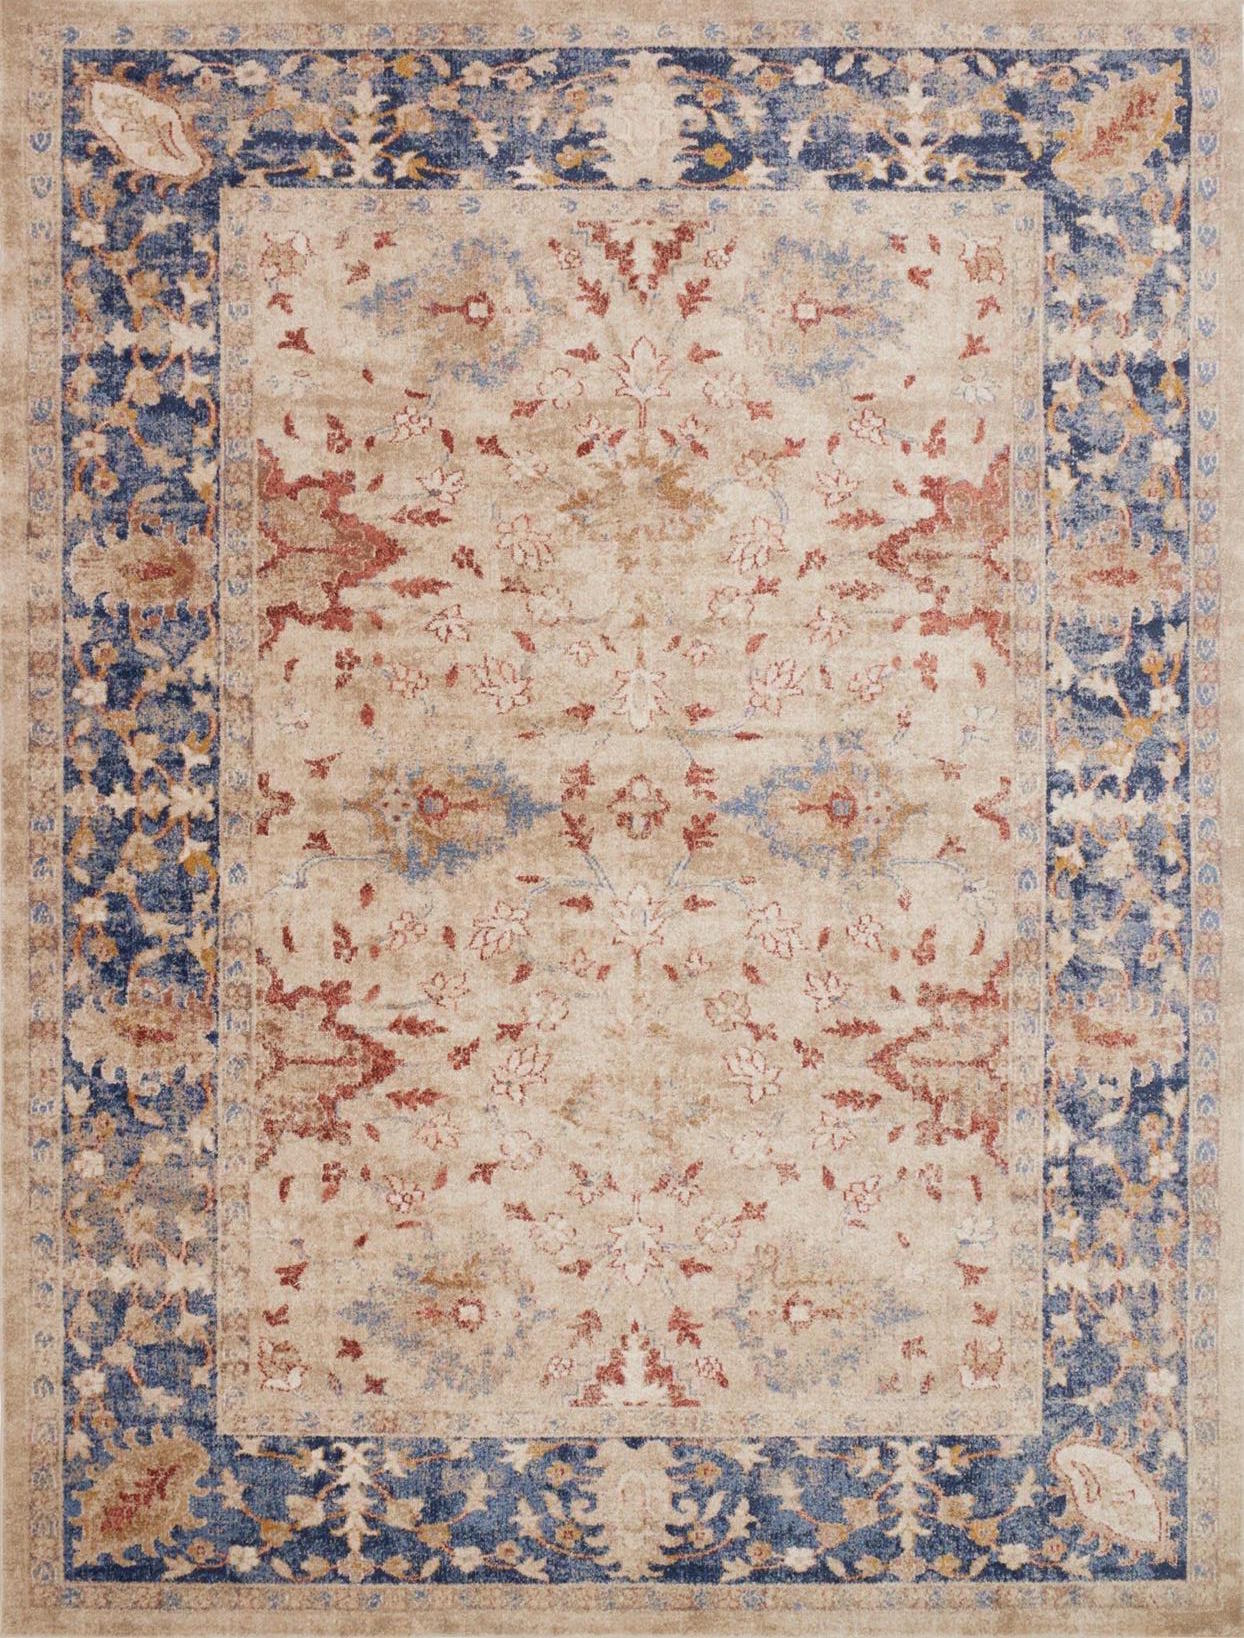 Trinity TY-08 Sand Blue Area Rug - Magnolia Home by Joanna Gaines